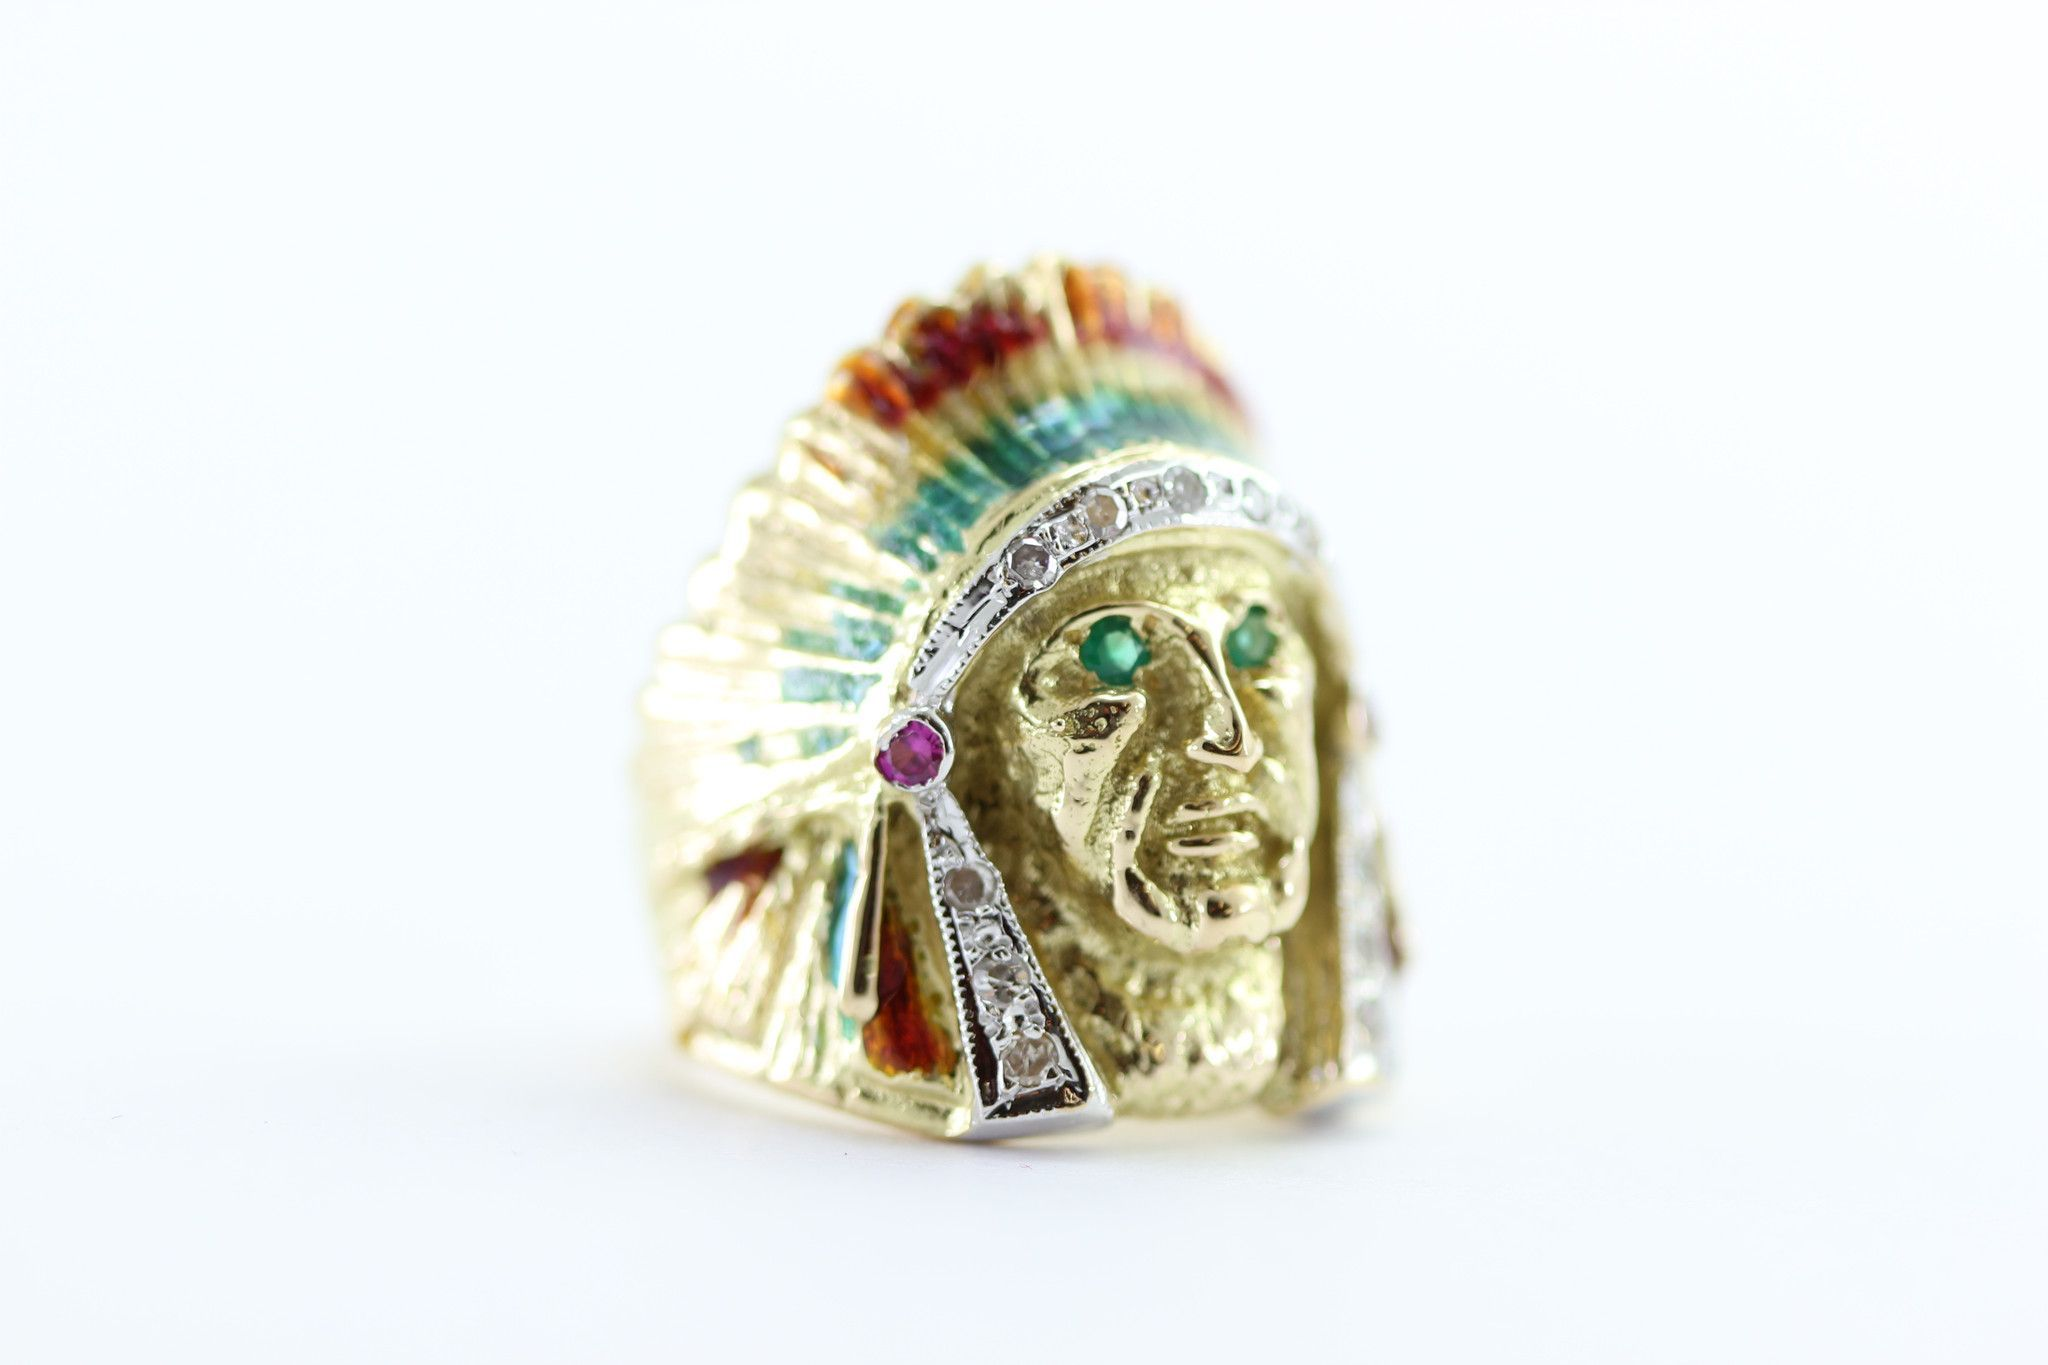 Native American Indian Head Mens Ring The Chief 18k Gold Enamel And Diamonds Cool Rings For Men Gold Enamel Native American Indians